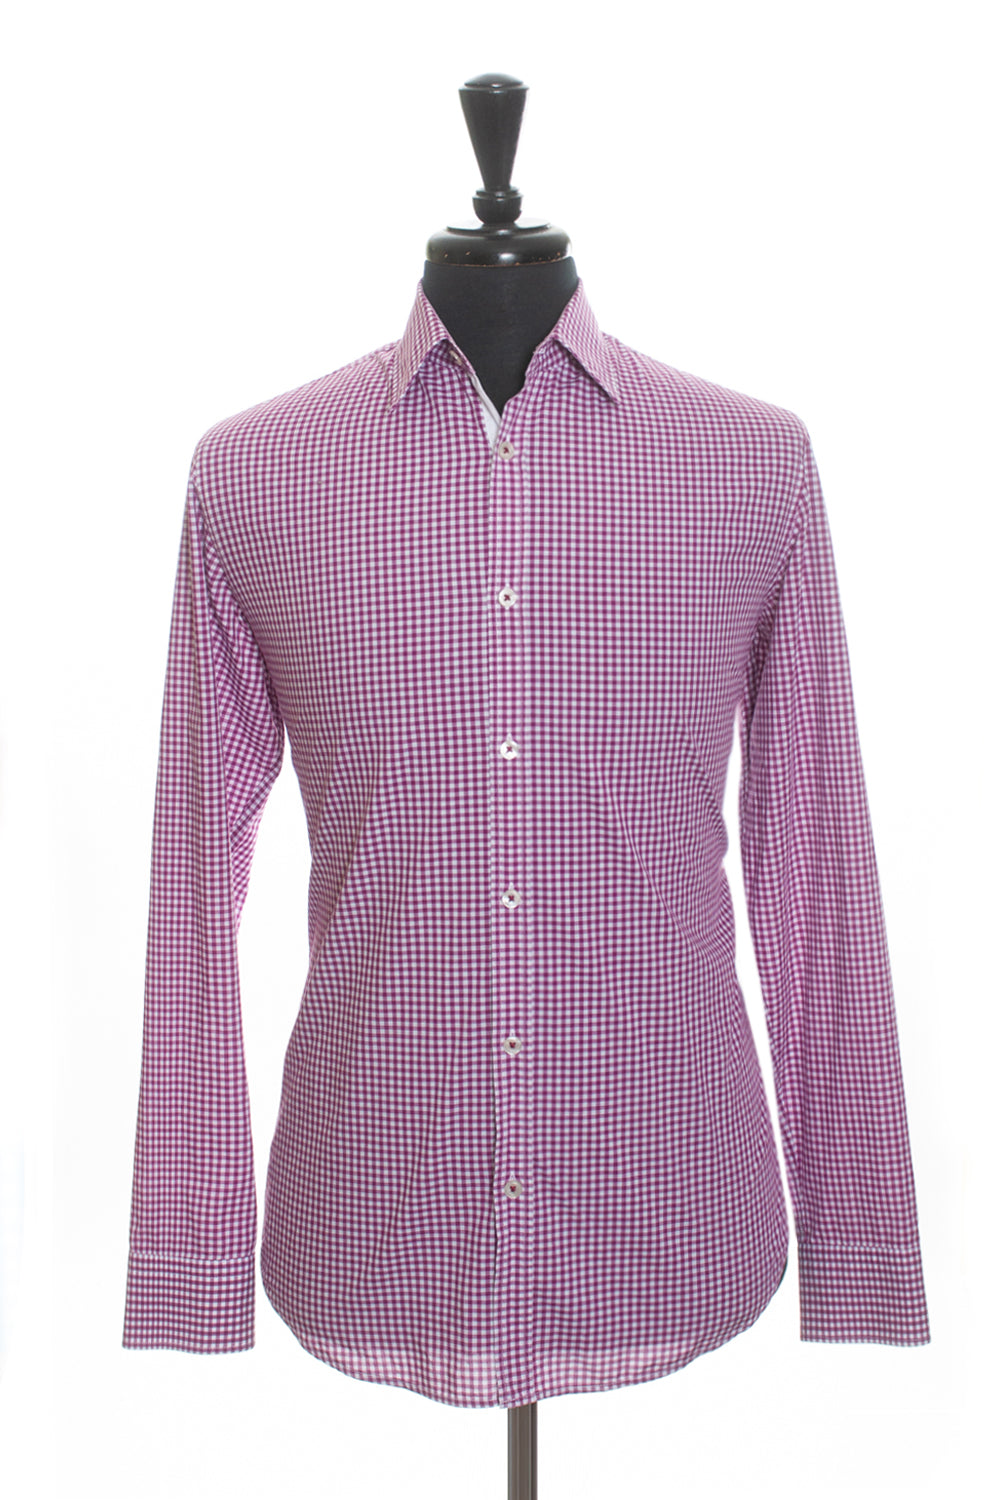 Hugo Boss Fuschia Gingham Check Regular Fit Obert Shirt for Luxmrkt.com Menswear Consignment Edmonton